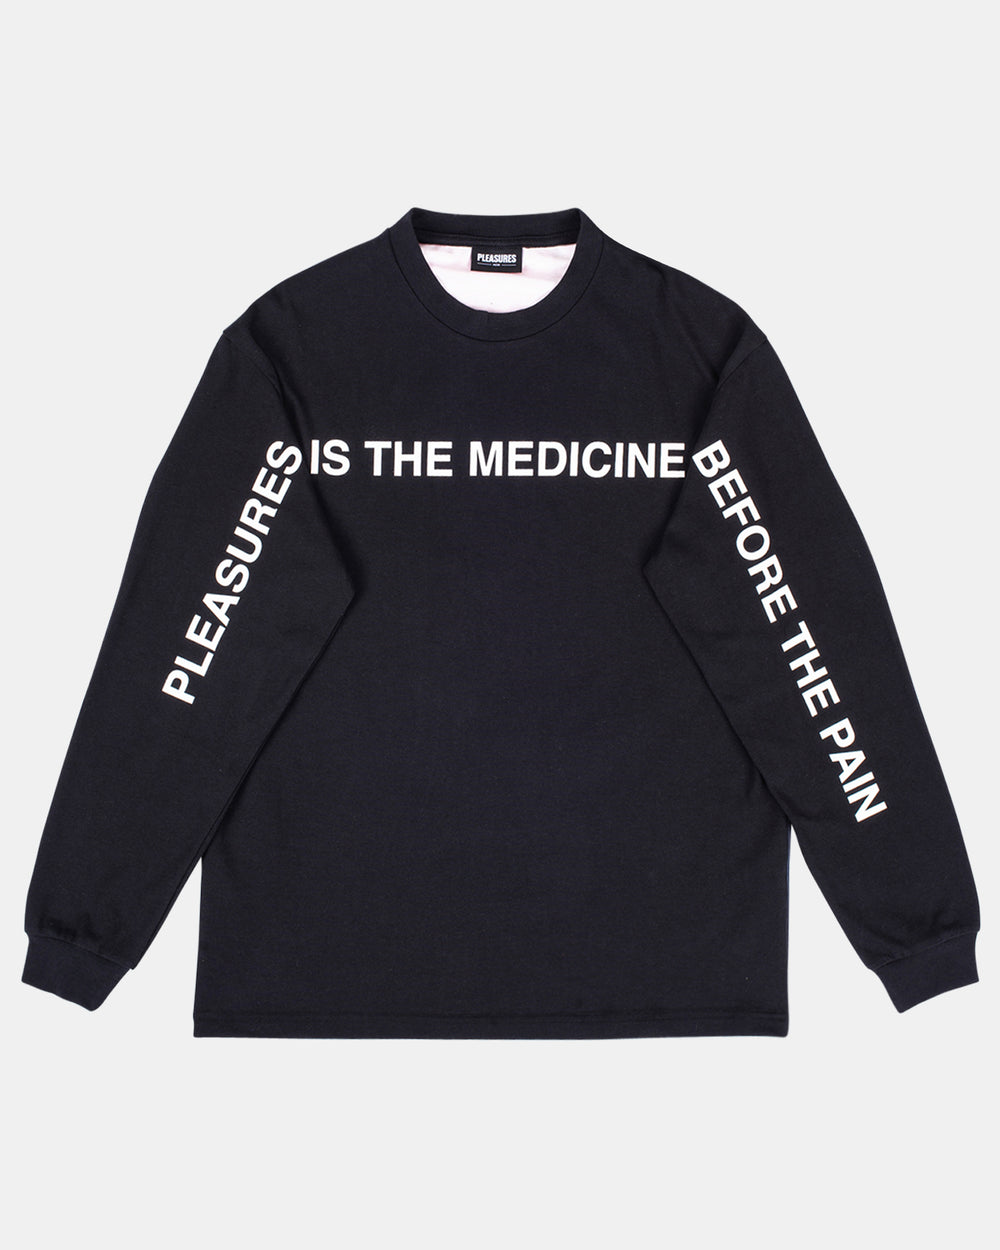 PLEASURES - Medicine Premium Long Sleeve Tee (Black)